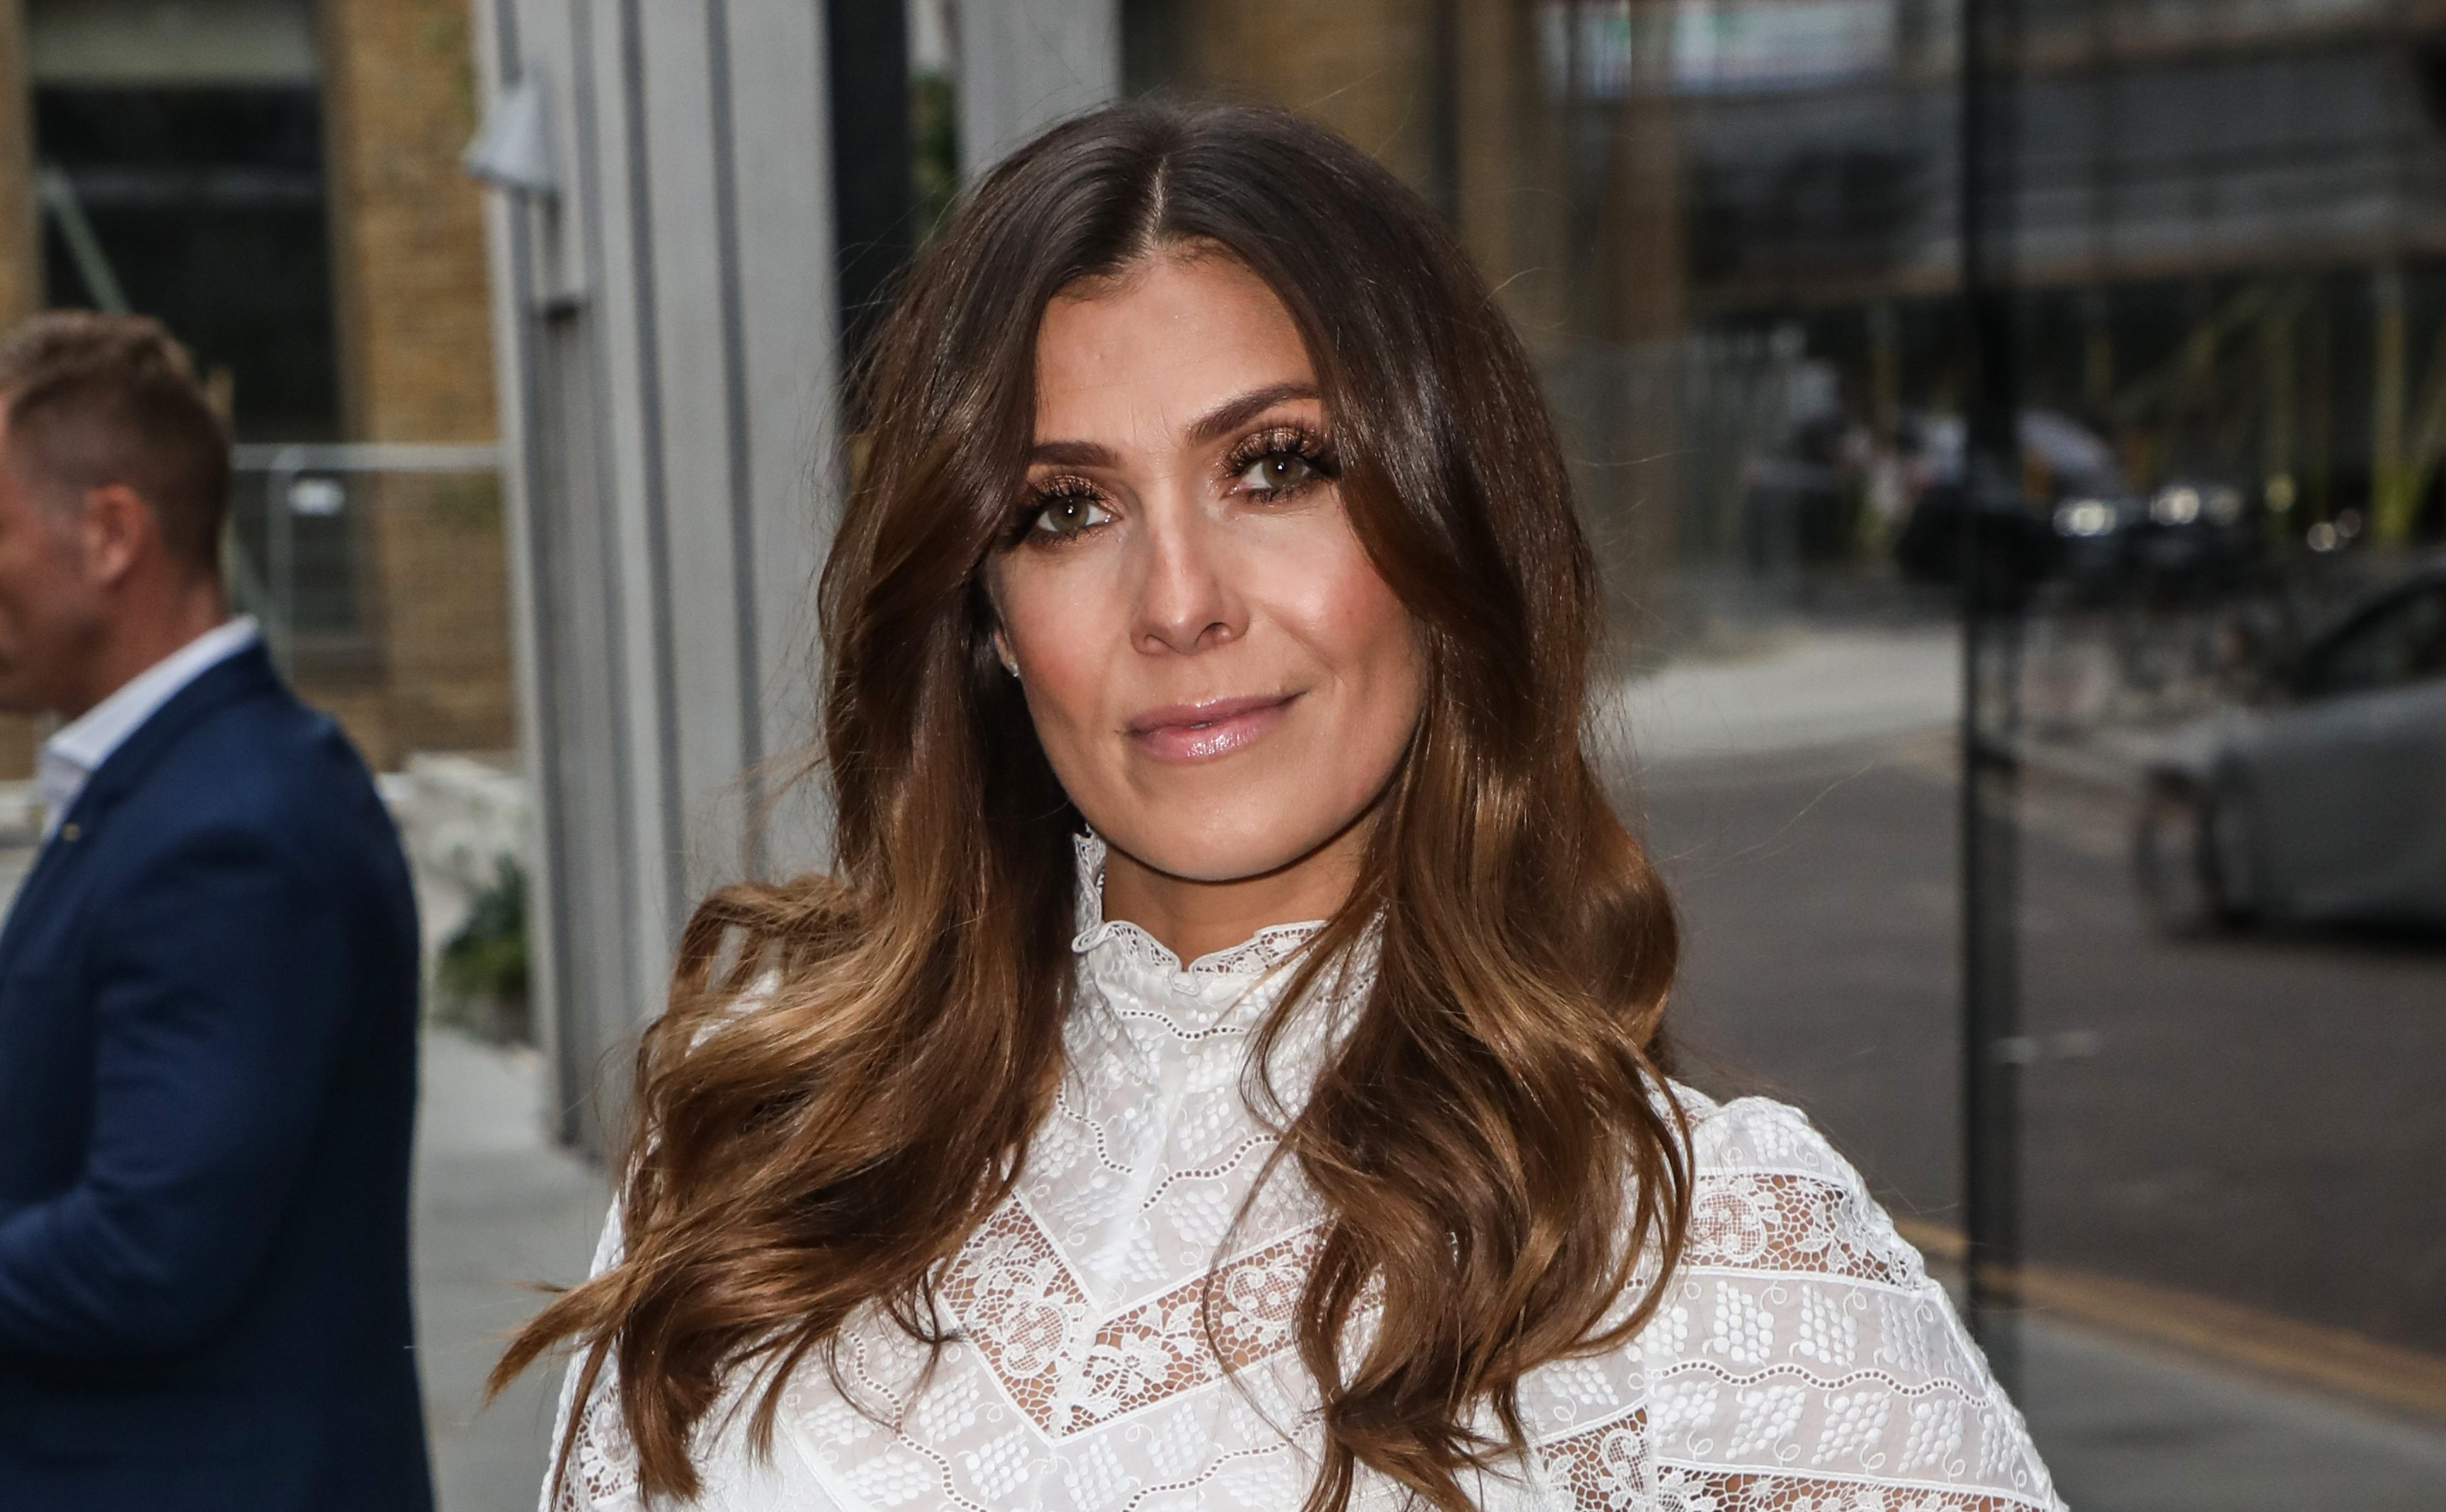 Kym Marsh teases I'm A Celebrity stint but issues warning to campmates